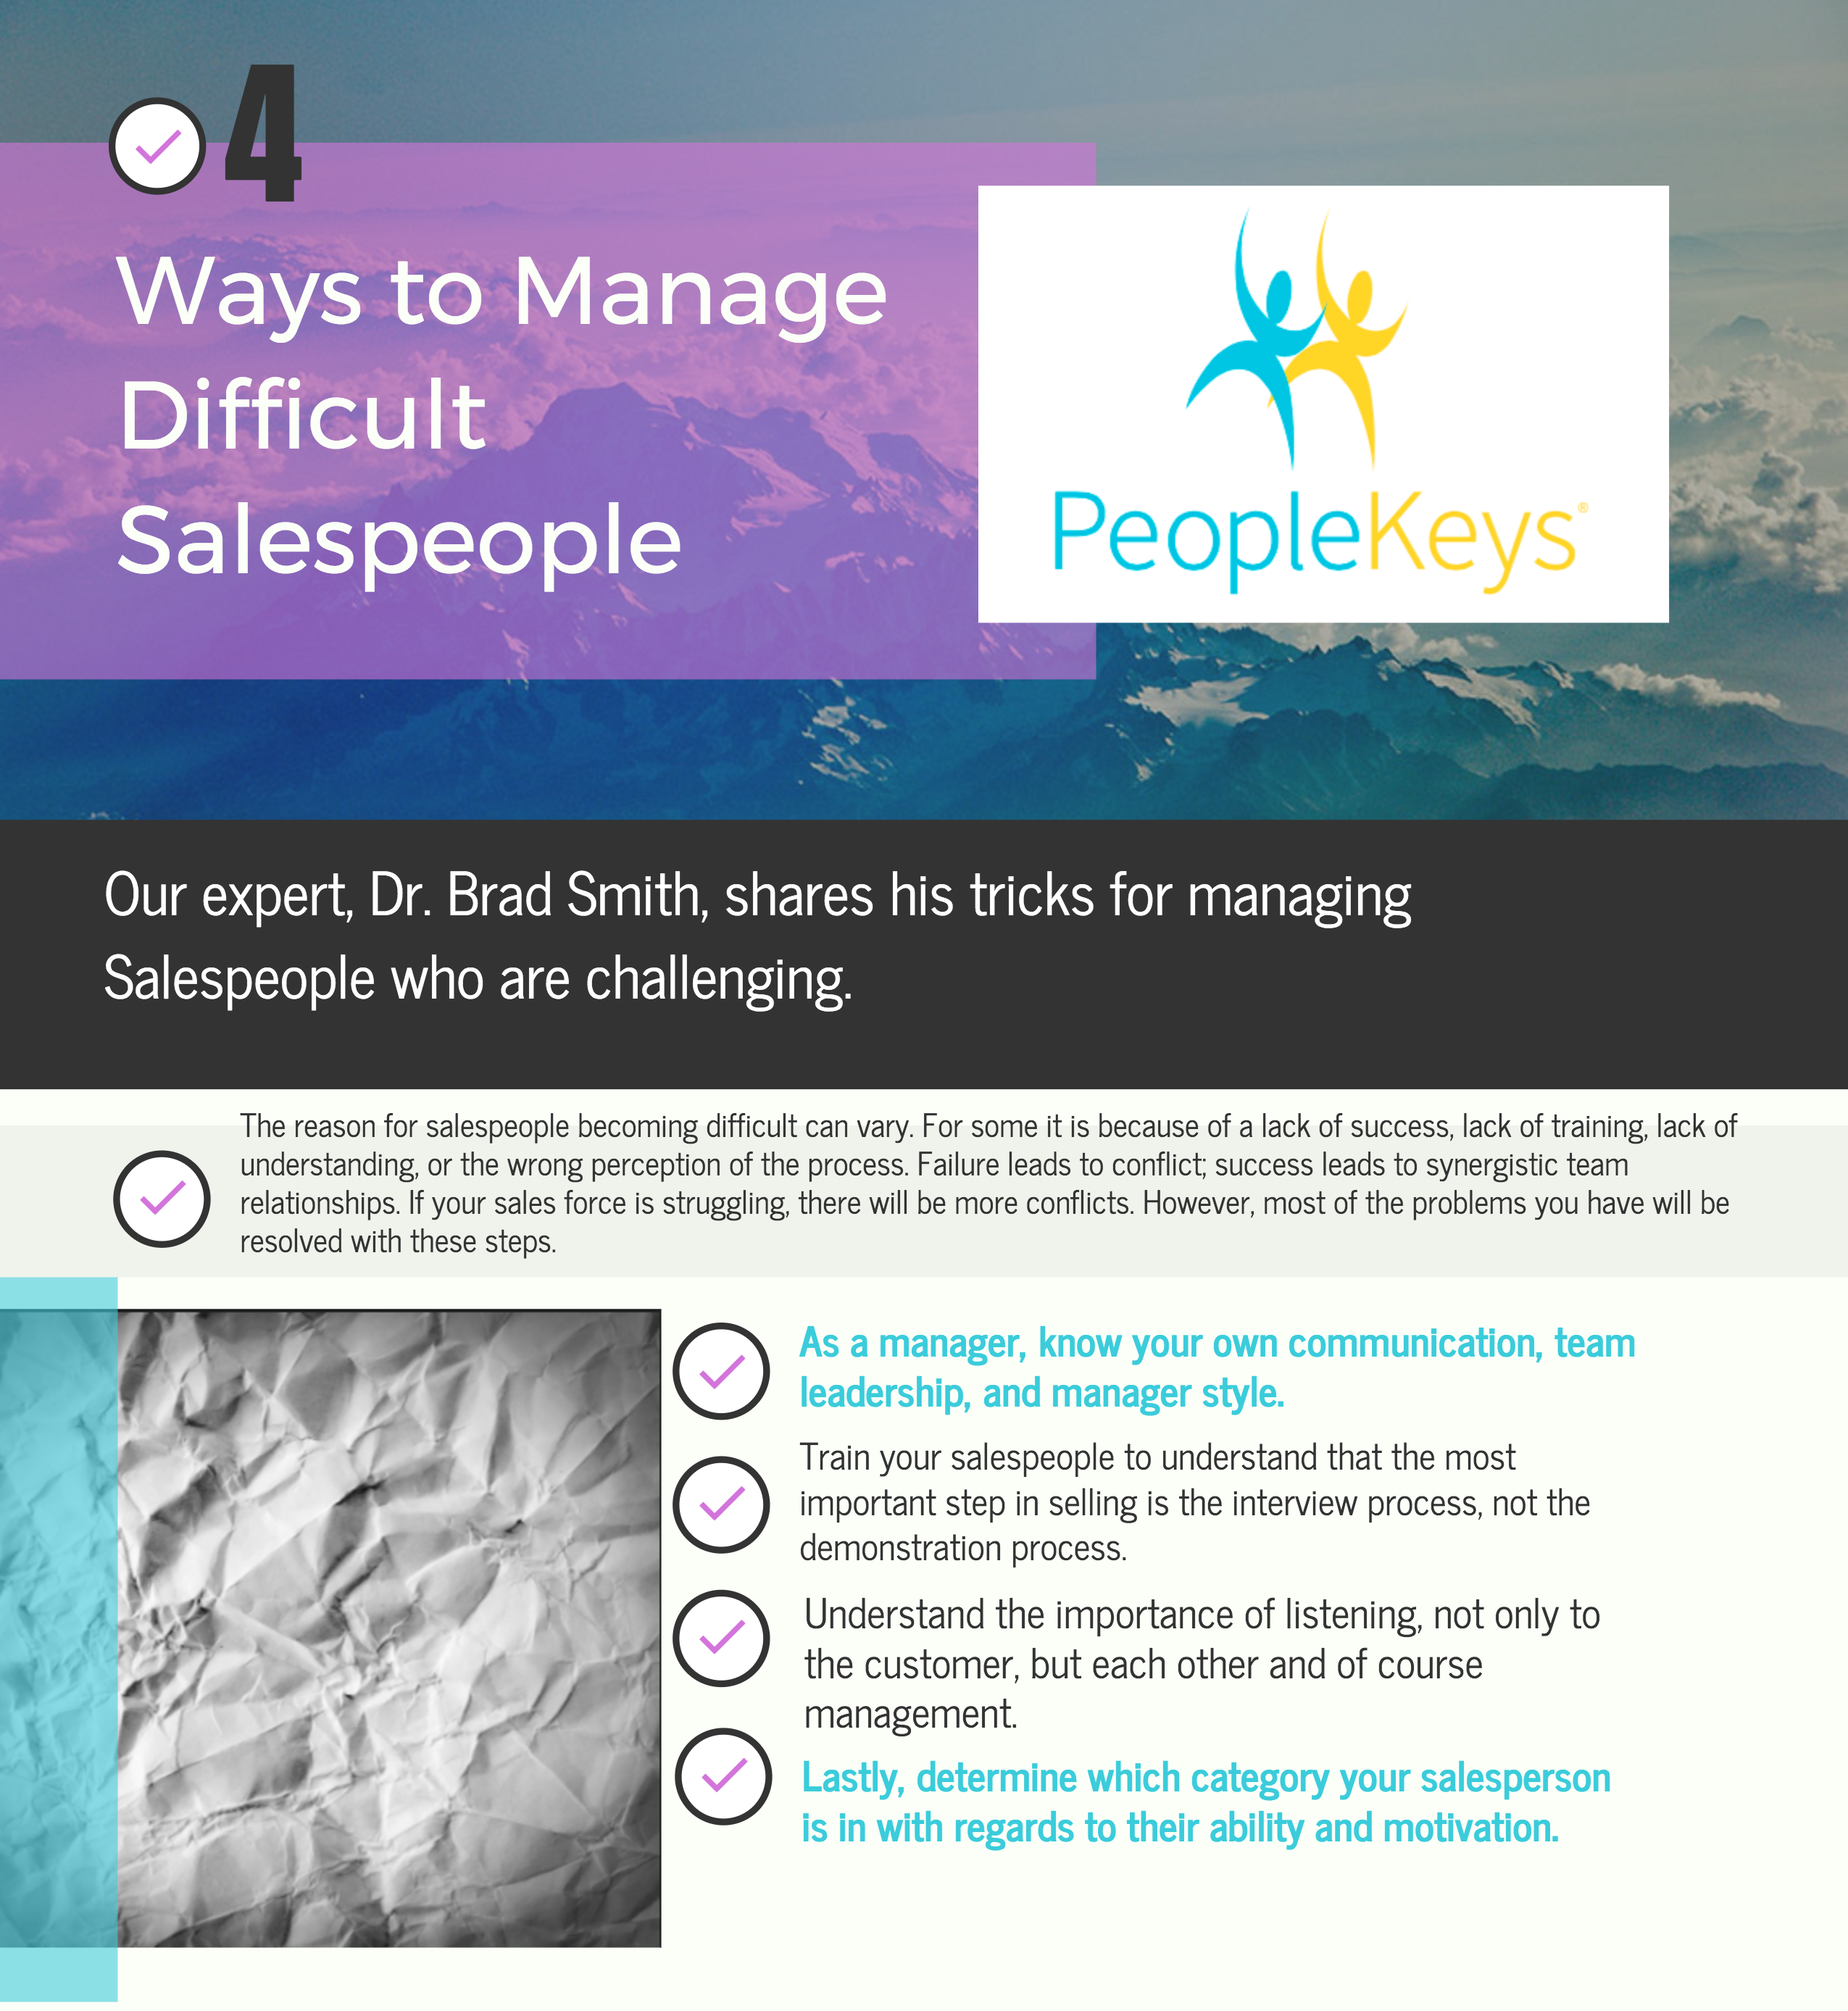 4 Ways to Manage Difficult Salespeople